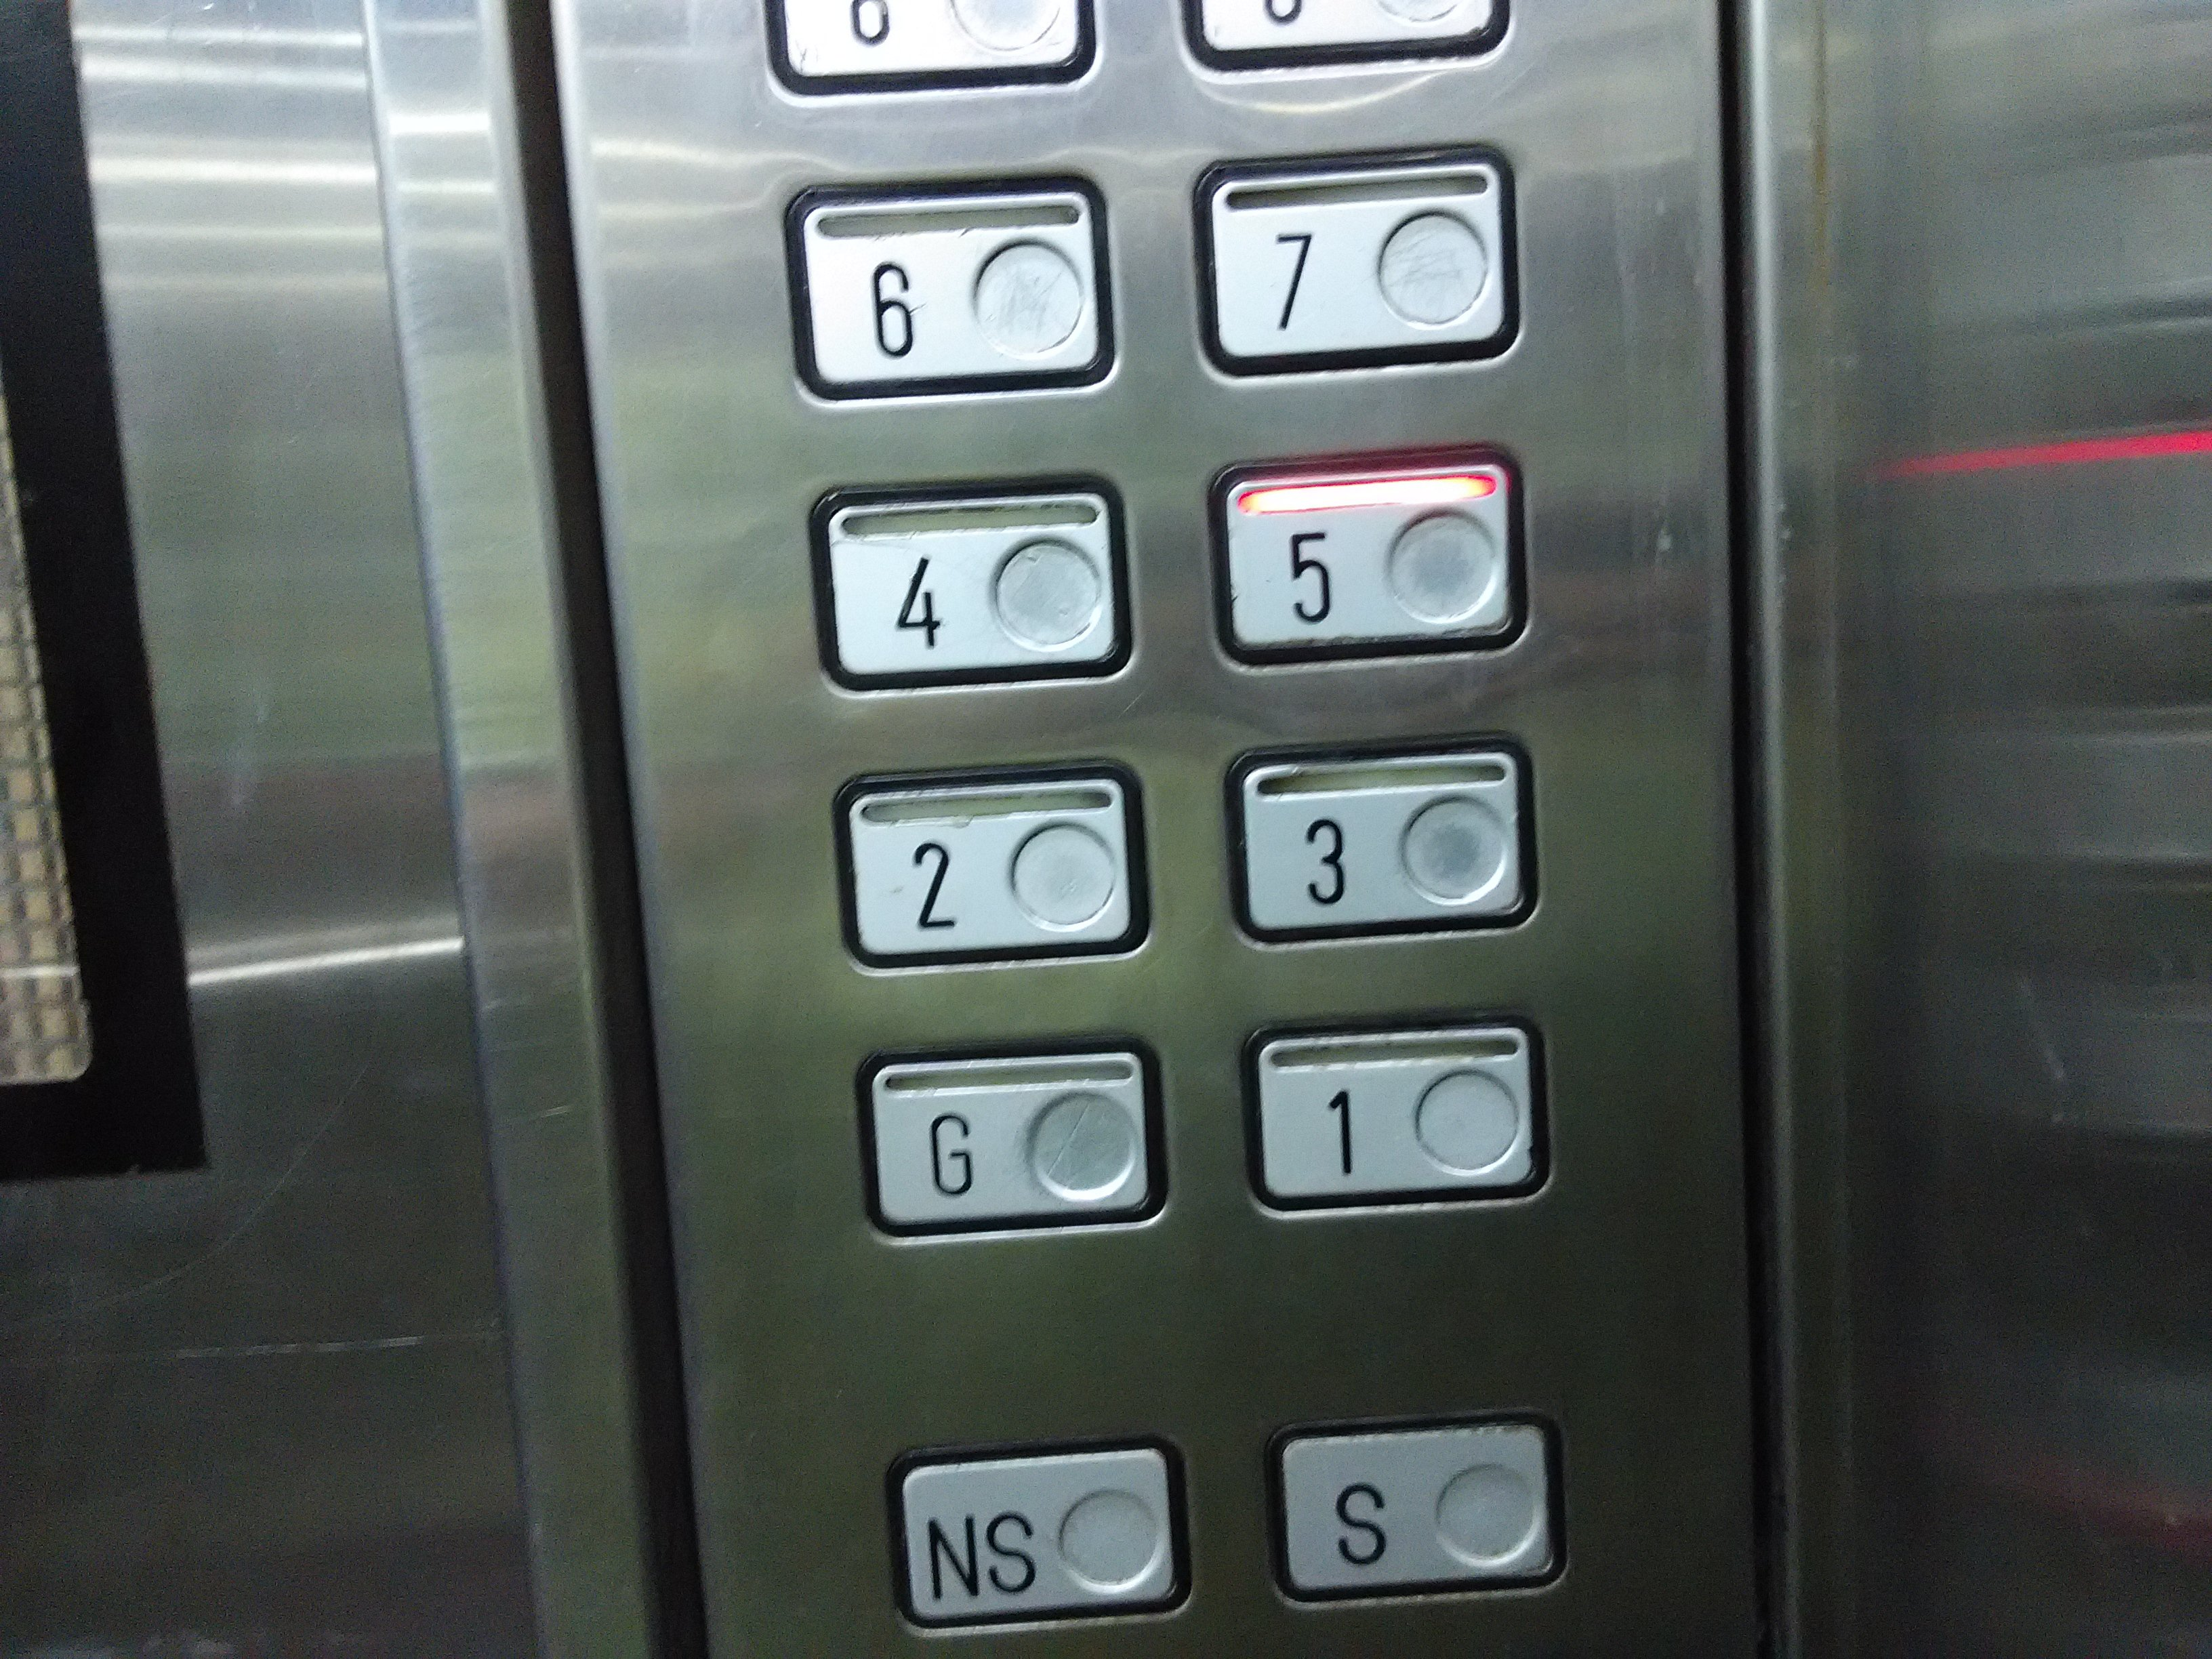 cancel-any-lift-floor-button_01